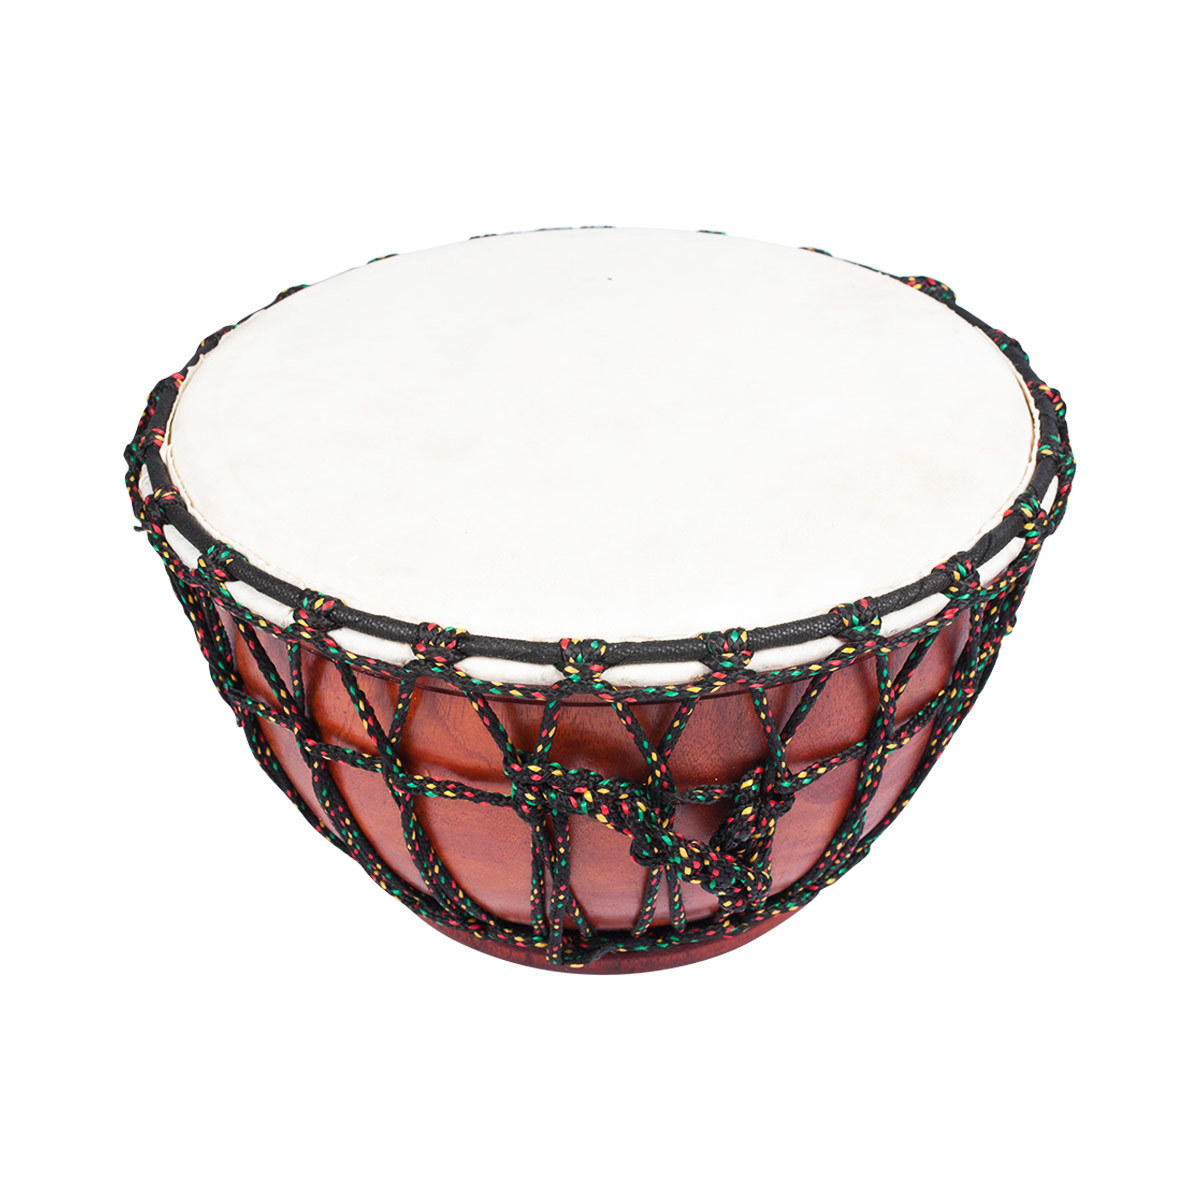 Rebana Hand Drum Gamelon Drum by X8 Drums